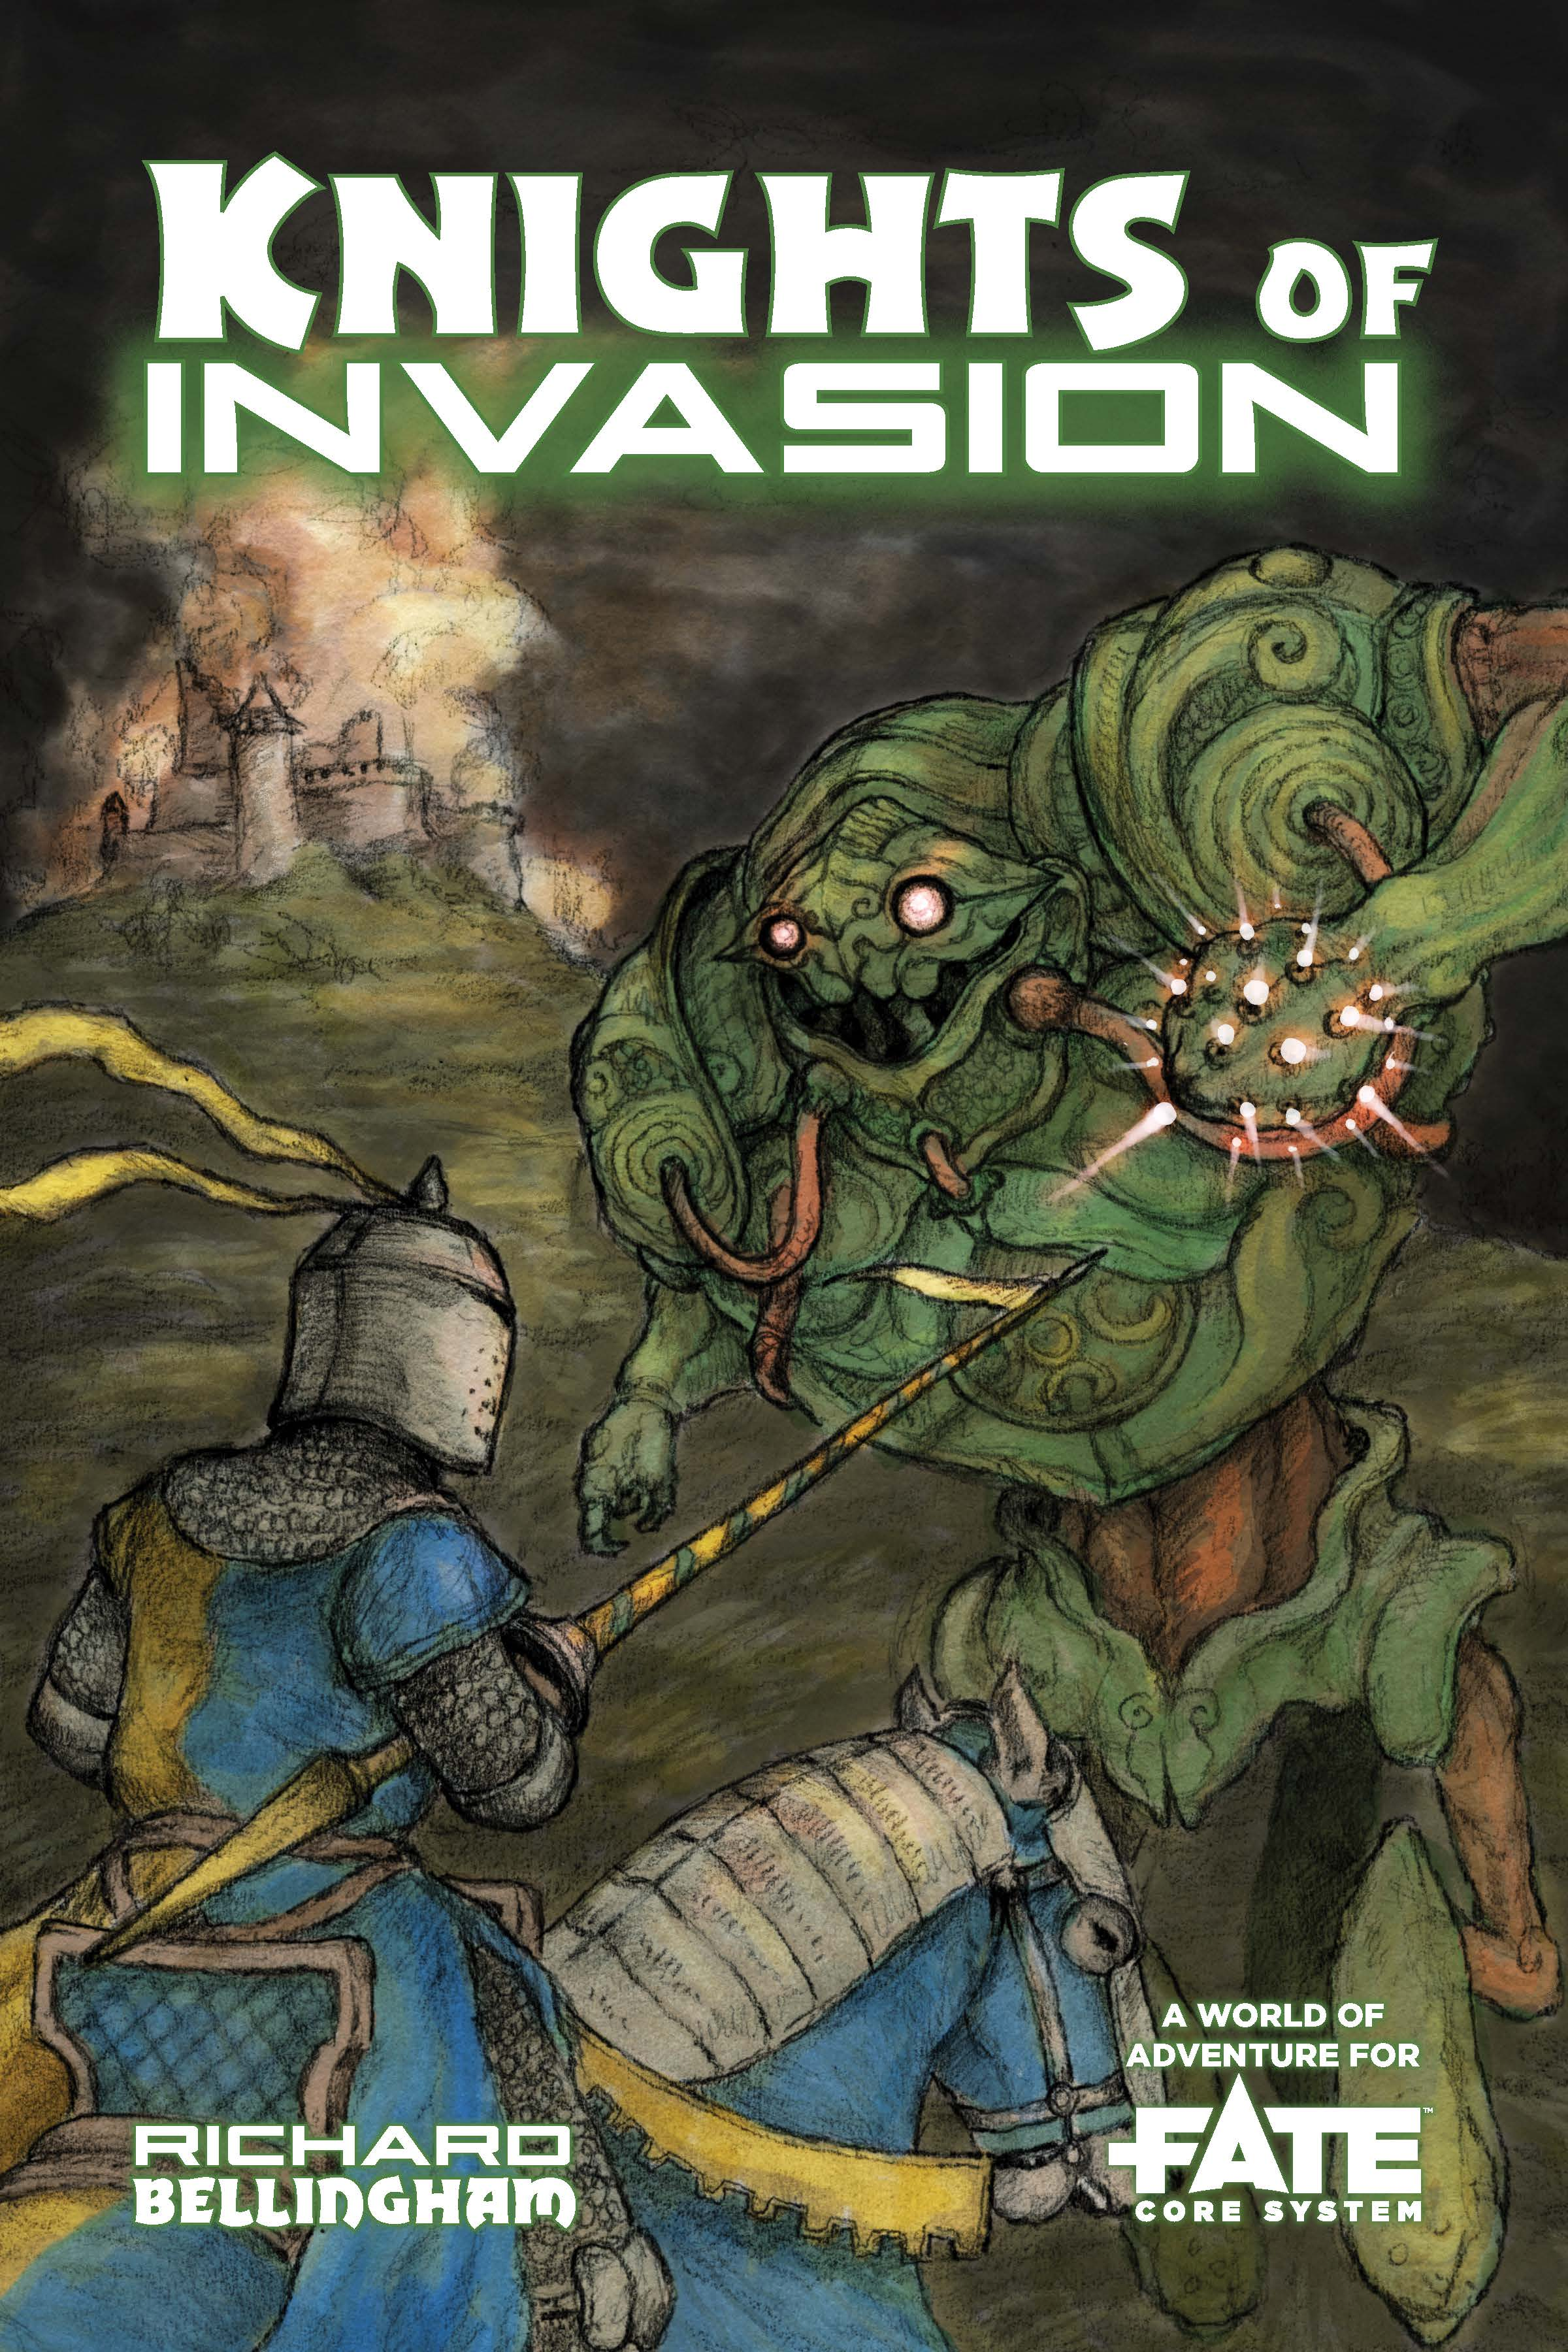 Knights_of_Invasion_o_A_World_of_Adventure_for_Fate_Core_(8730223)_Seite_01